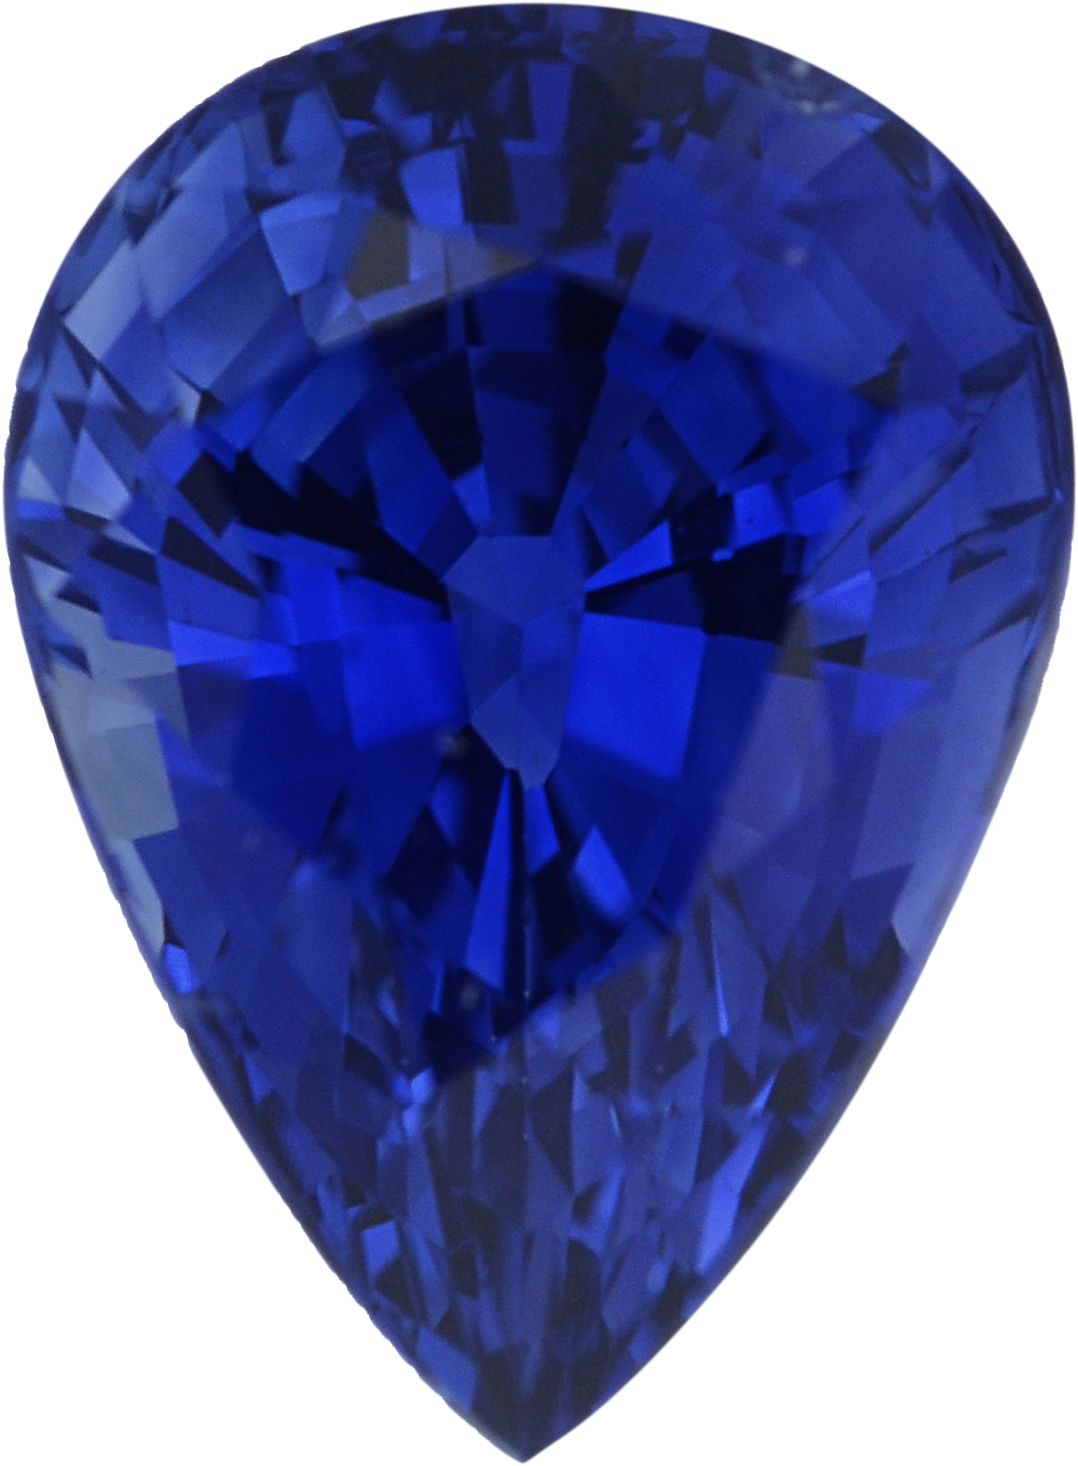 1.2 carats Blue Loose Sapphire Gemstone in Pear Cut, 7.39 x 5.41 mm